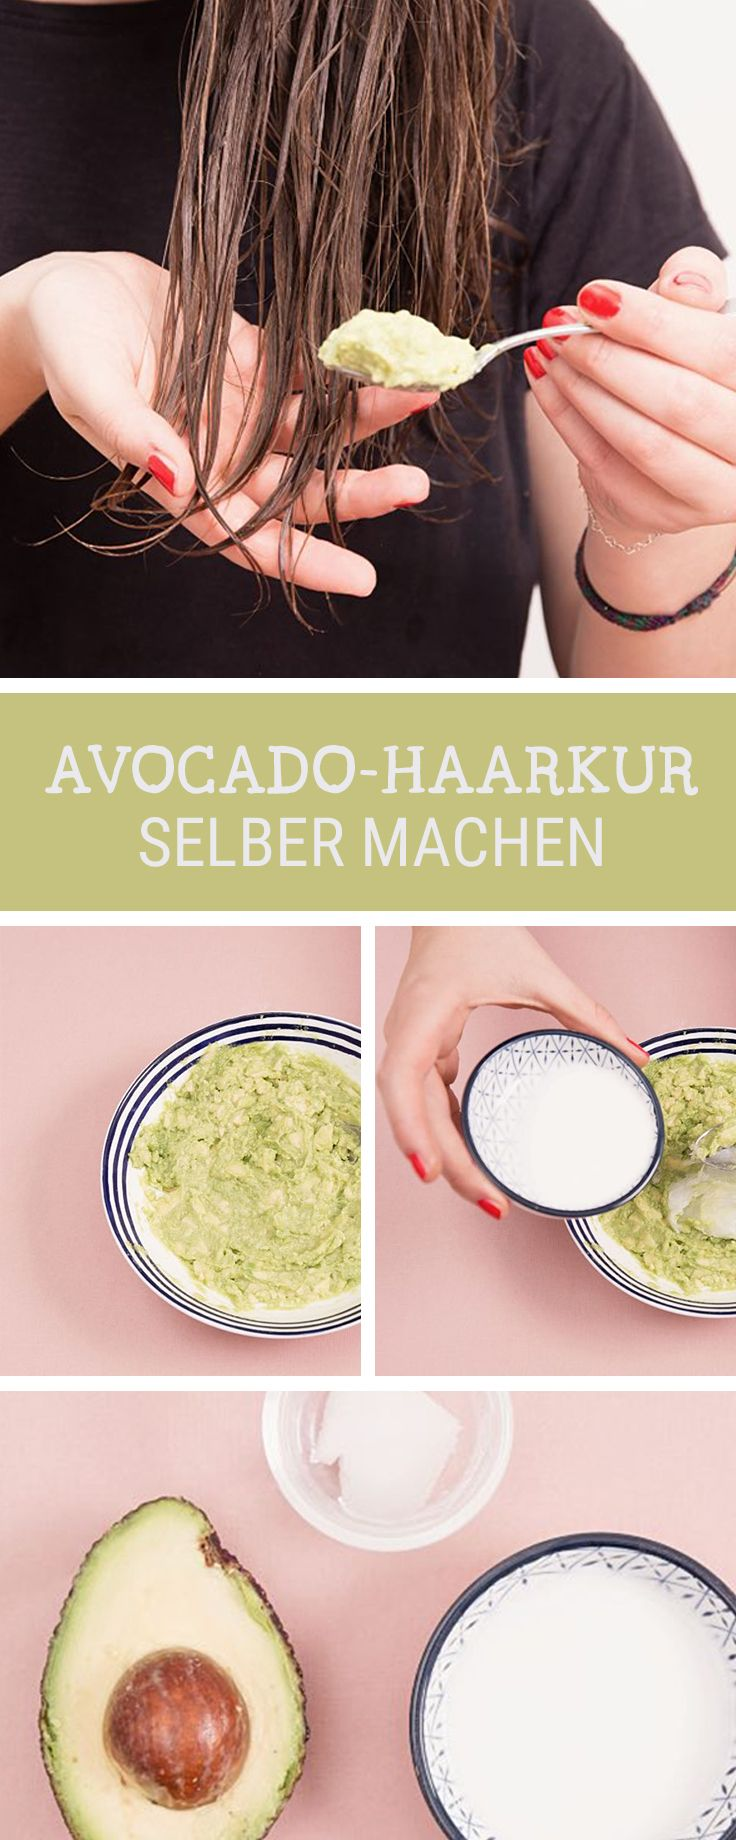 Beauty-DIY: Wir zeigen Dir, wie Du Dir eine Avocado-Haarkur einfach selbermachen kannst / beauty diy: learn how to make a avocado hair mask via DaWanda.com